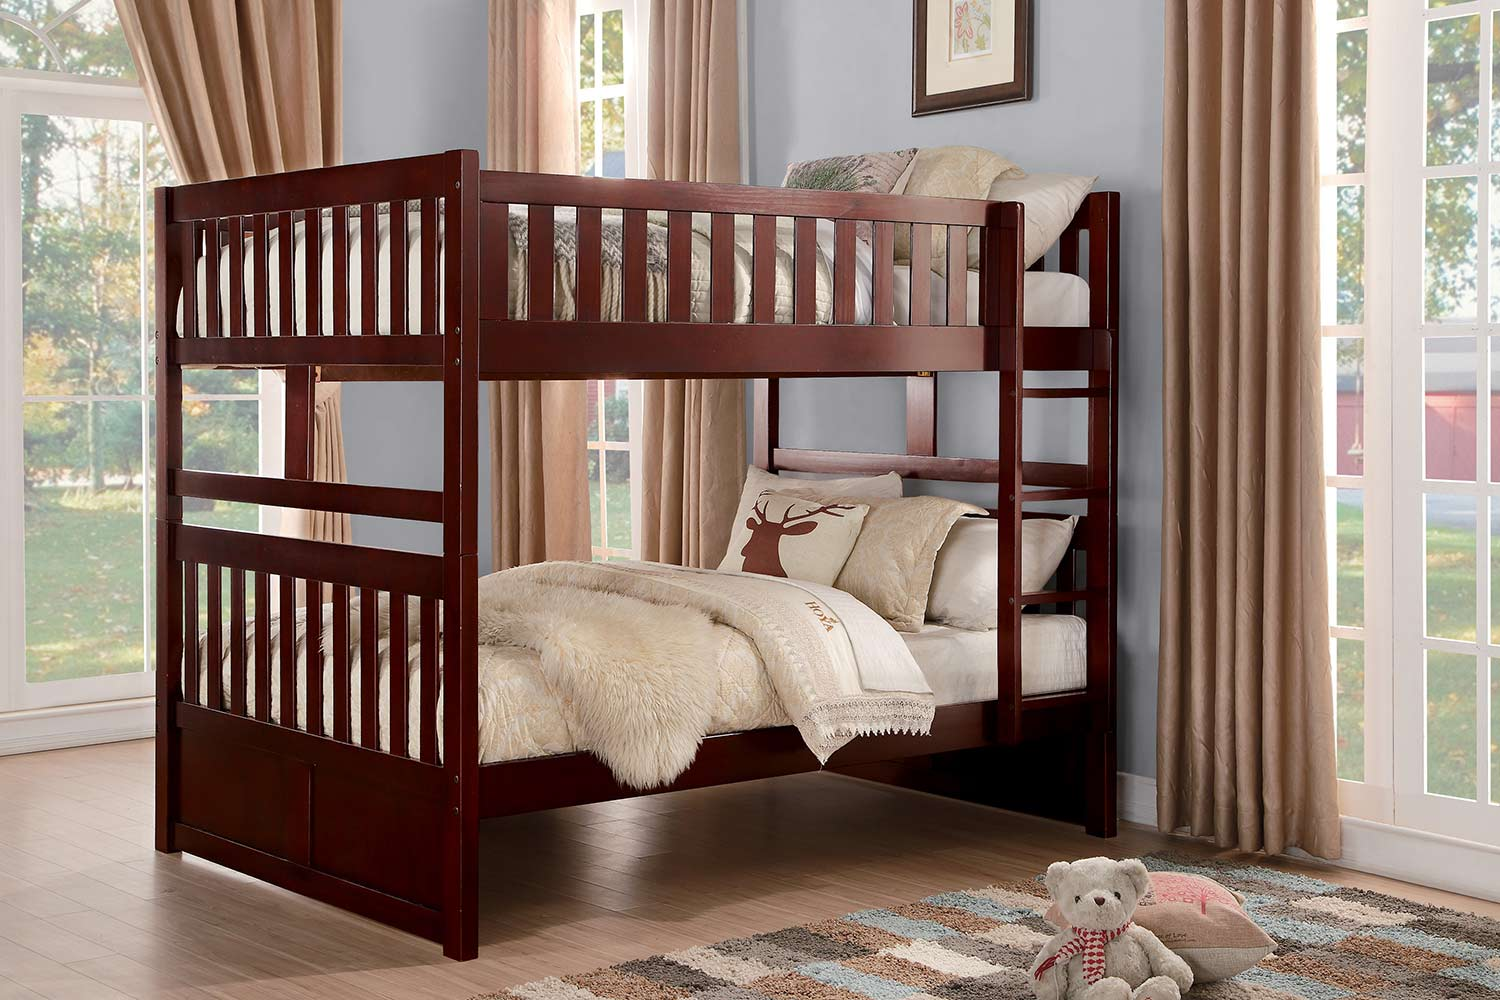 Homelegance Rowe Full over Full Bunk Bed - Dark Cherry